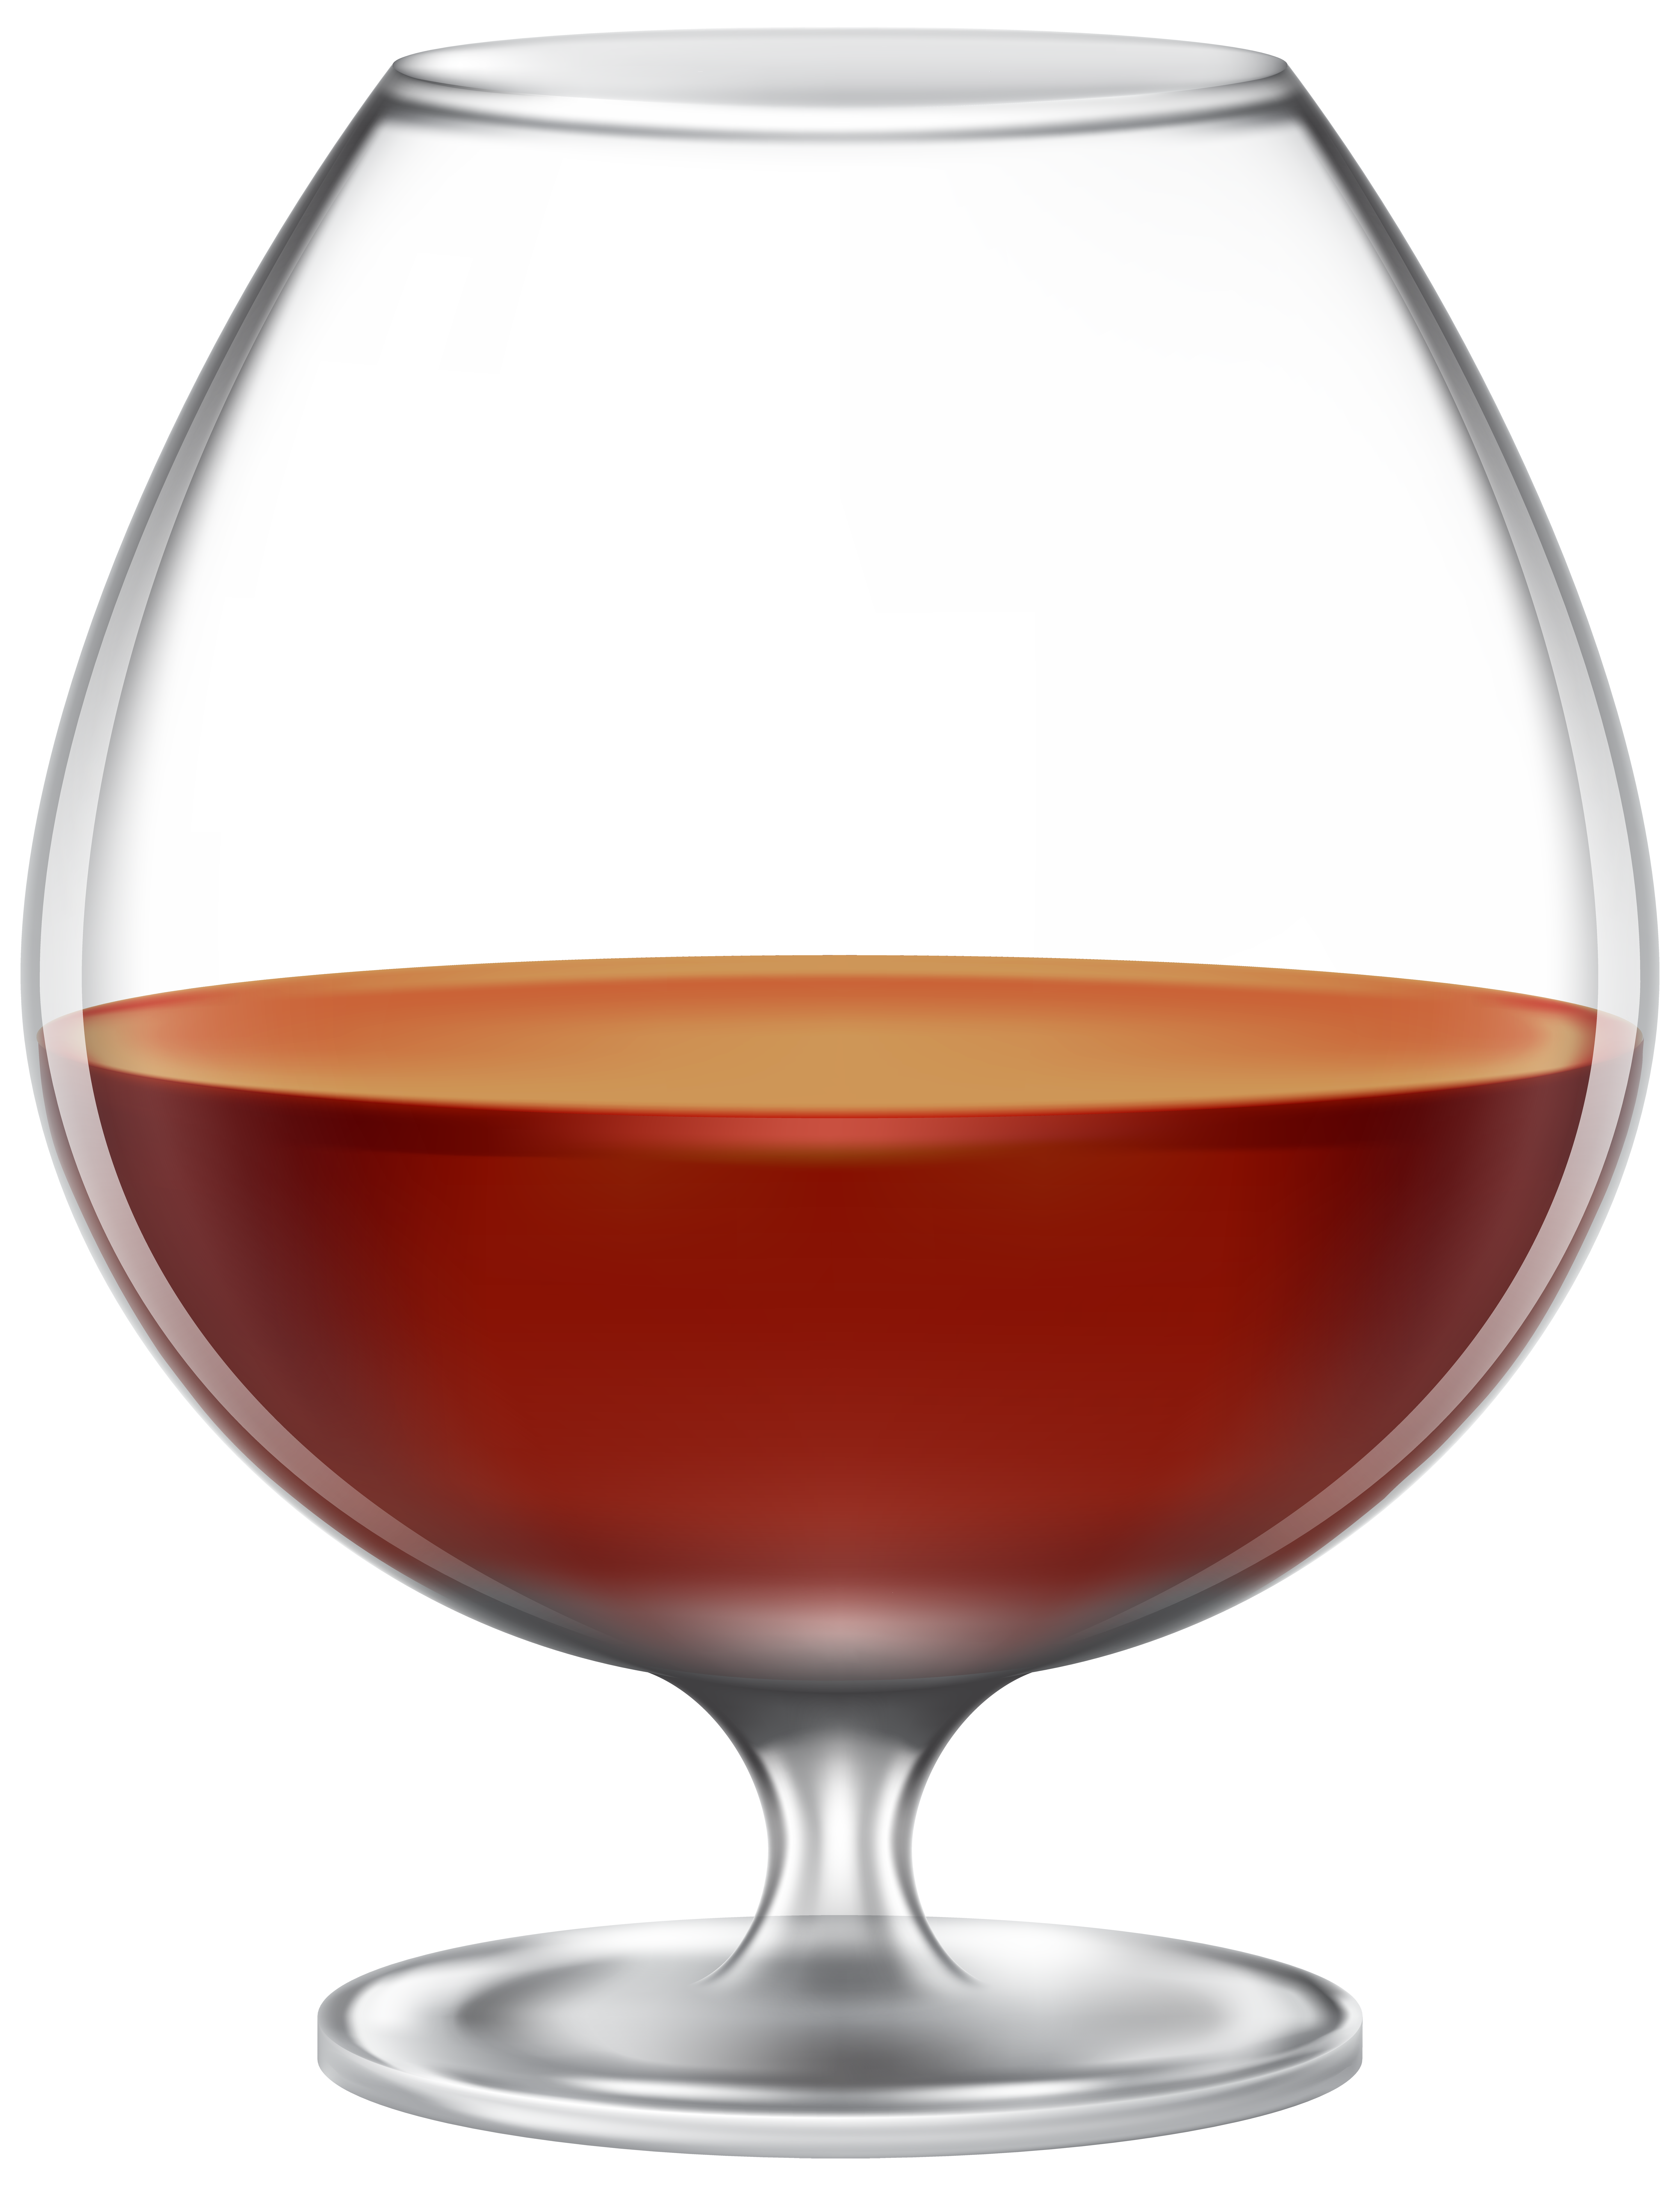 Cognac glass clipart picture freeuse library Brandy Glass PNG Clip Art Image | Gallery Yopriceville - High ... picture freeuse library